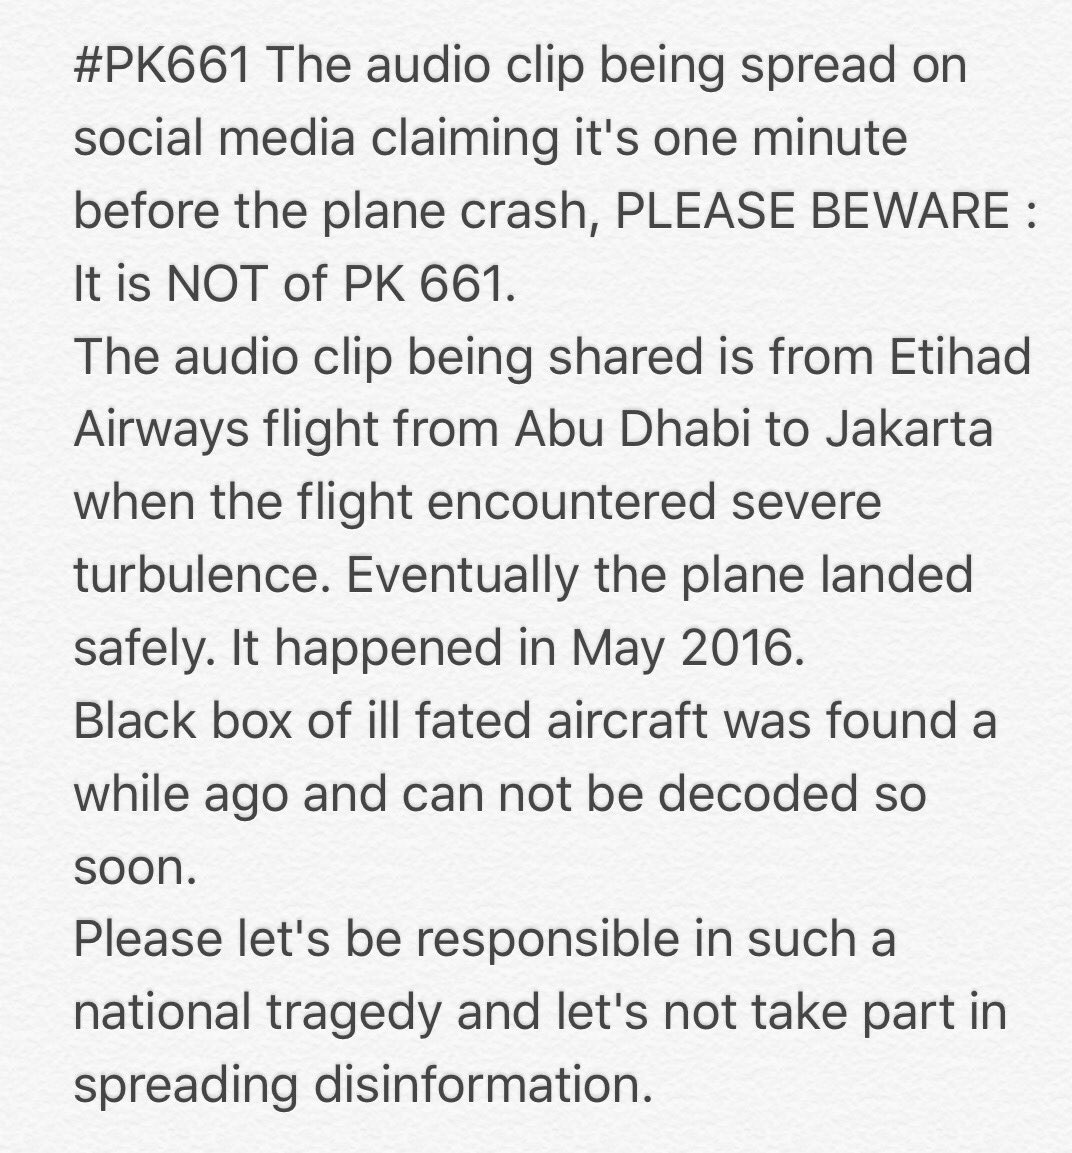 #PK661 Public Service Message : Re the fake audio clip being circulated : https://t.co/RKBDjS66K1